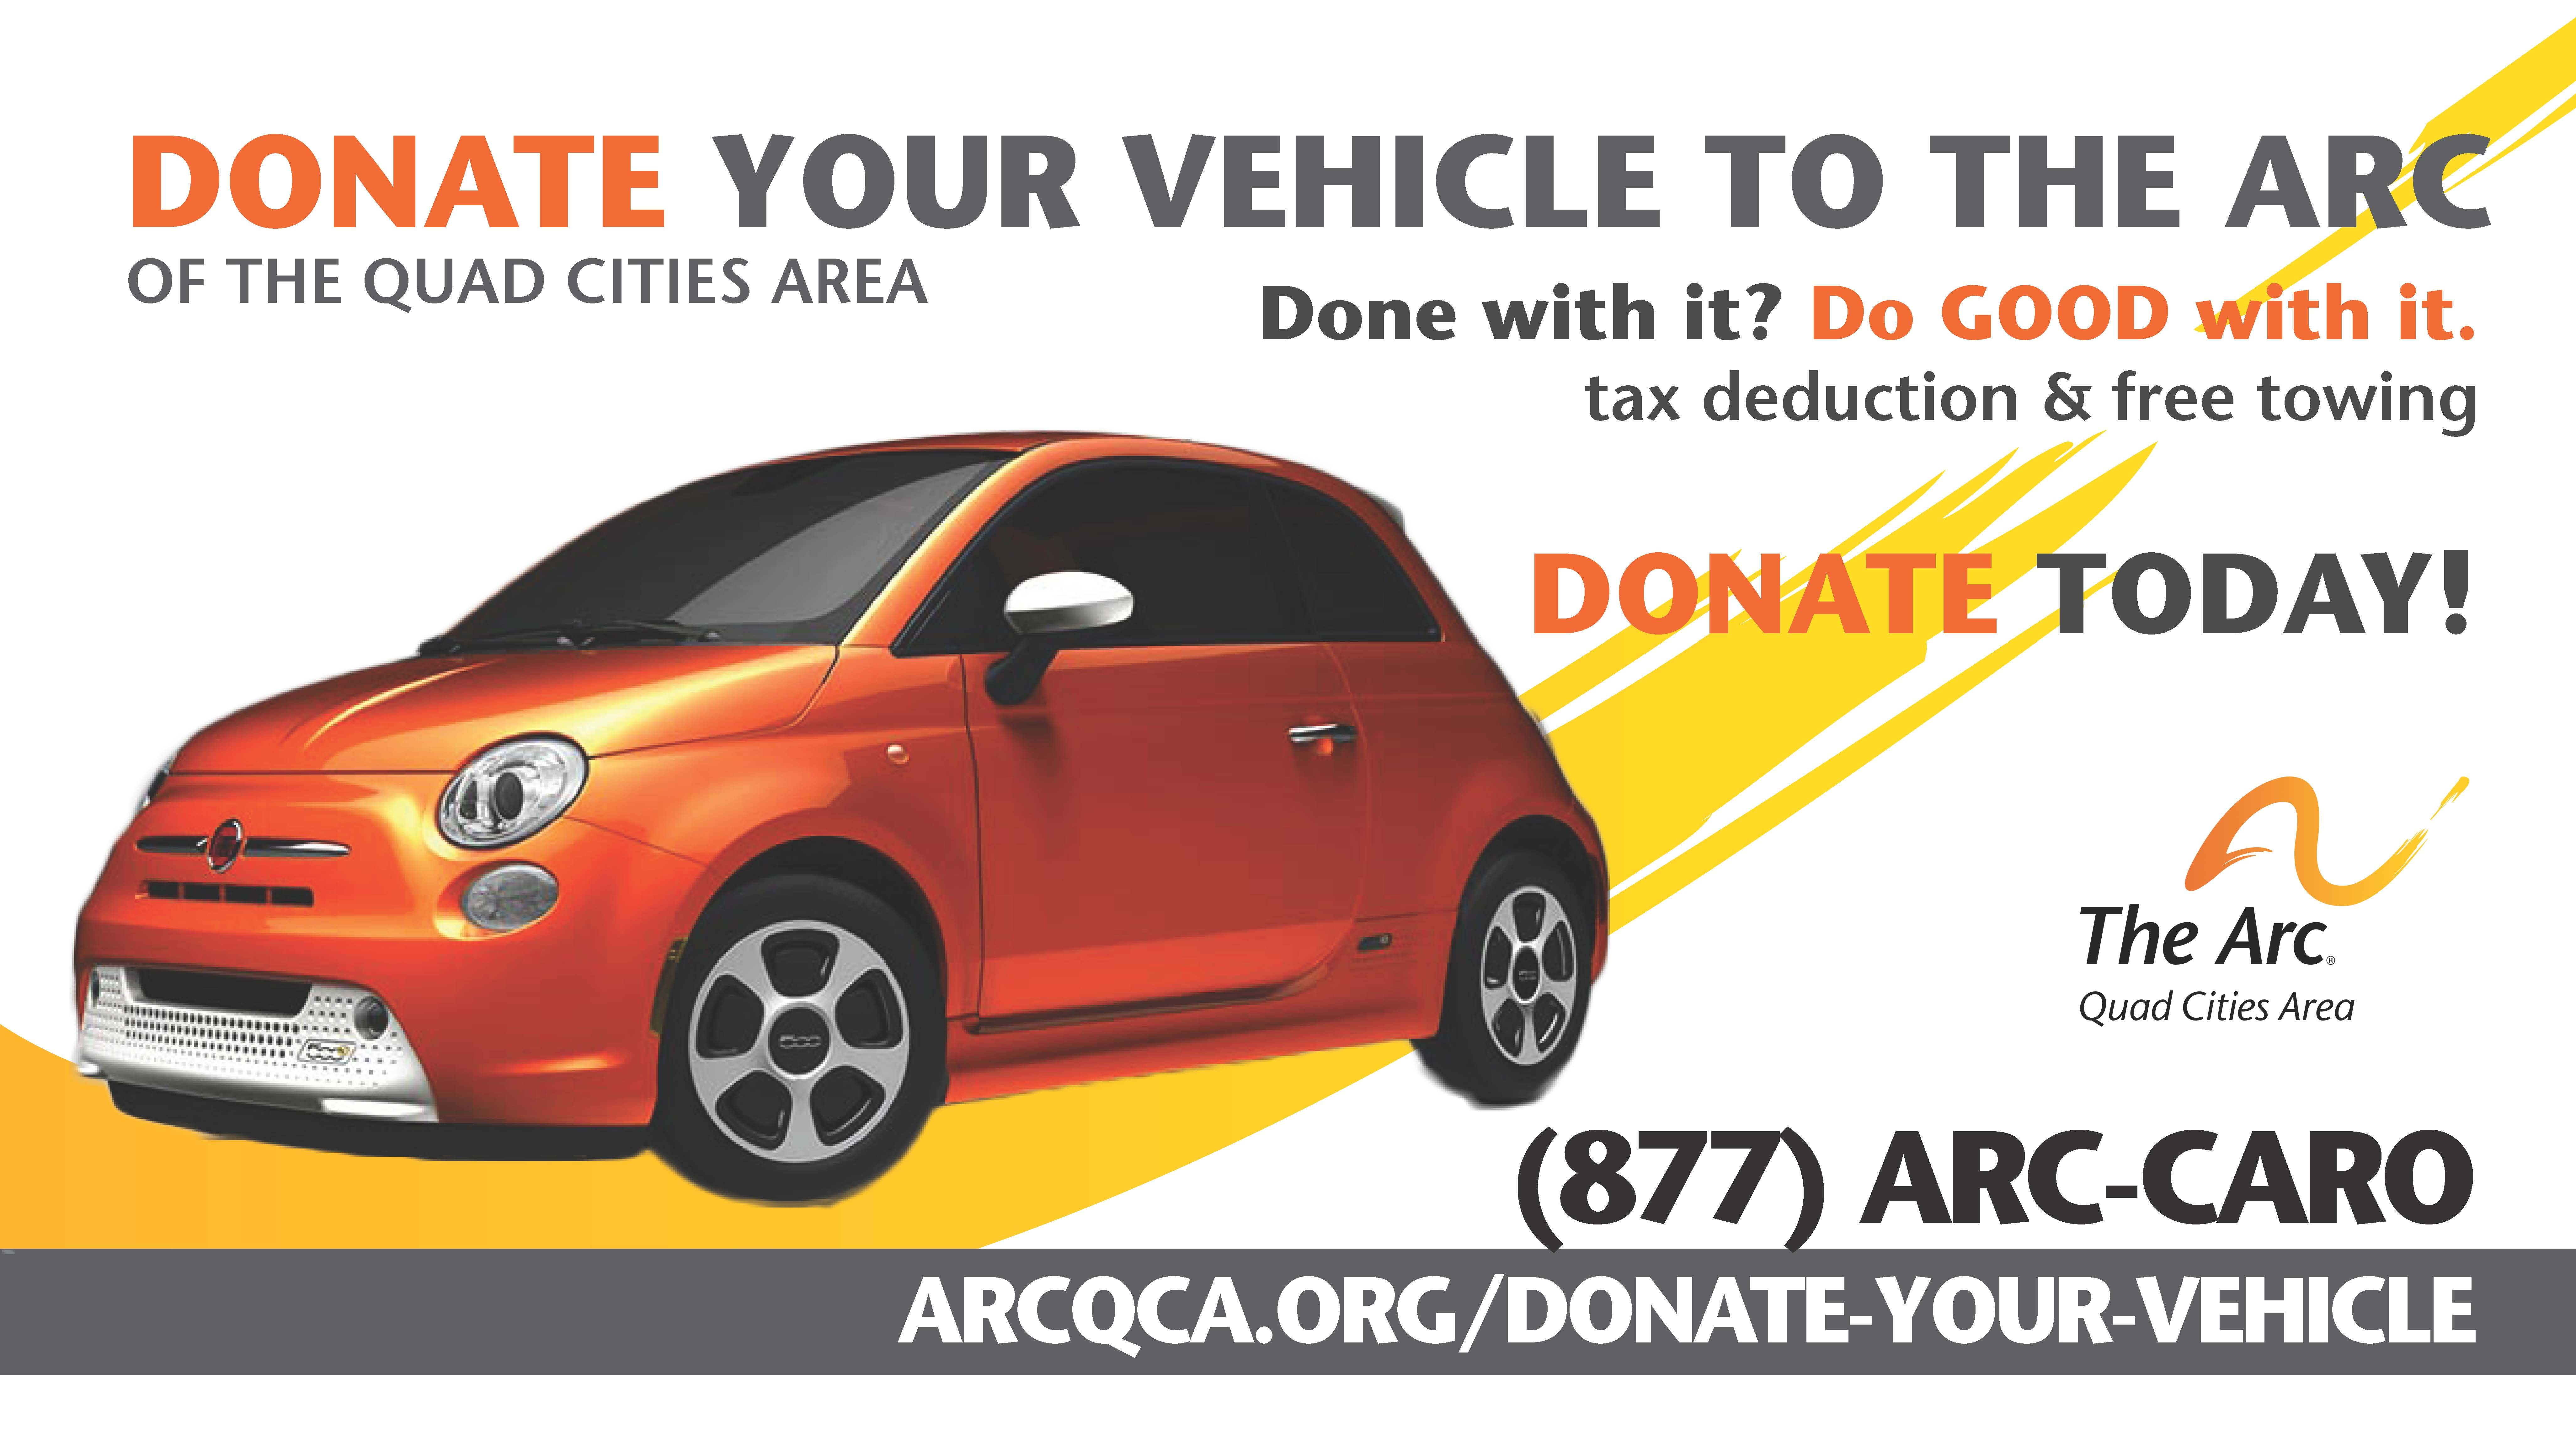 Donate Your Car >> Donate Your Vehicle The Arc Of The Quad Cities Area Donate The